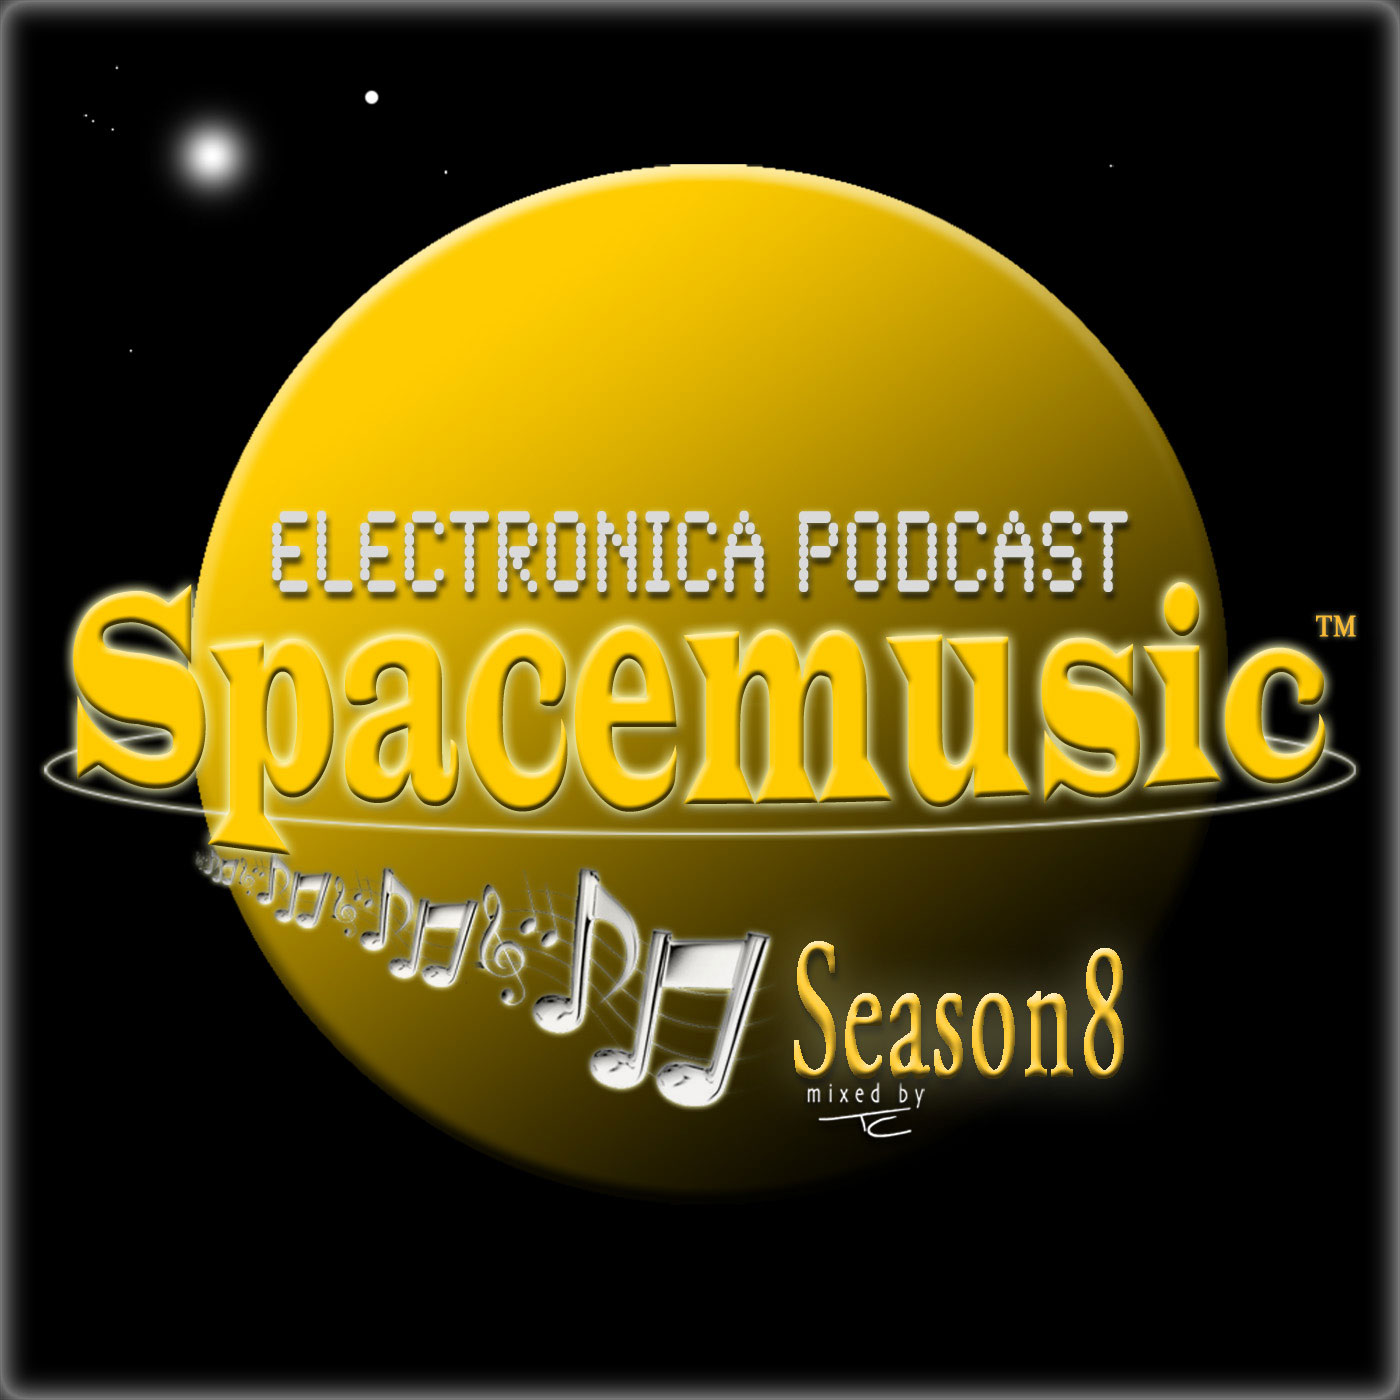 Spacemusic (Season 8)